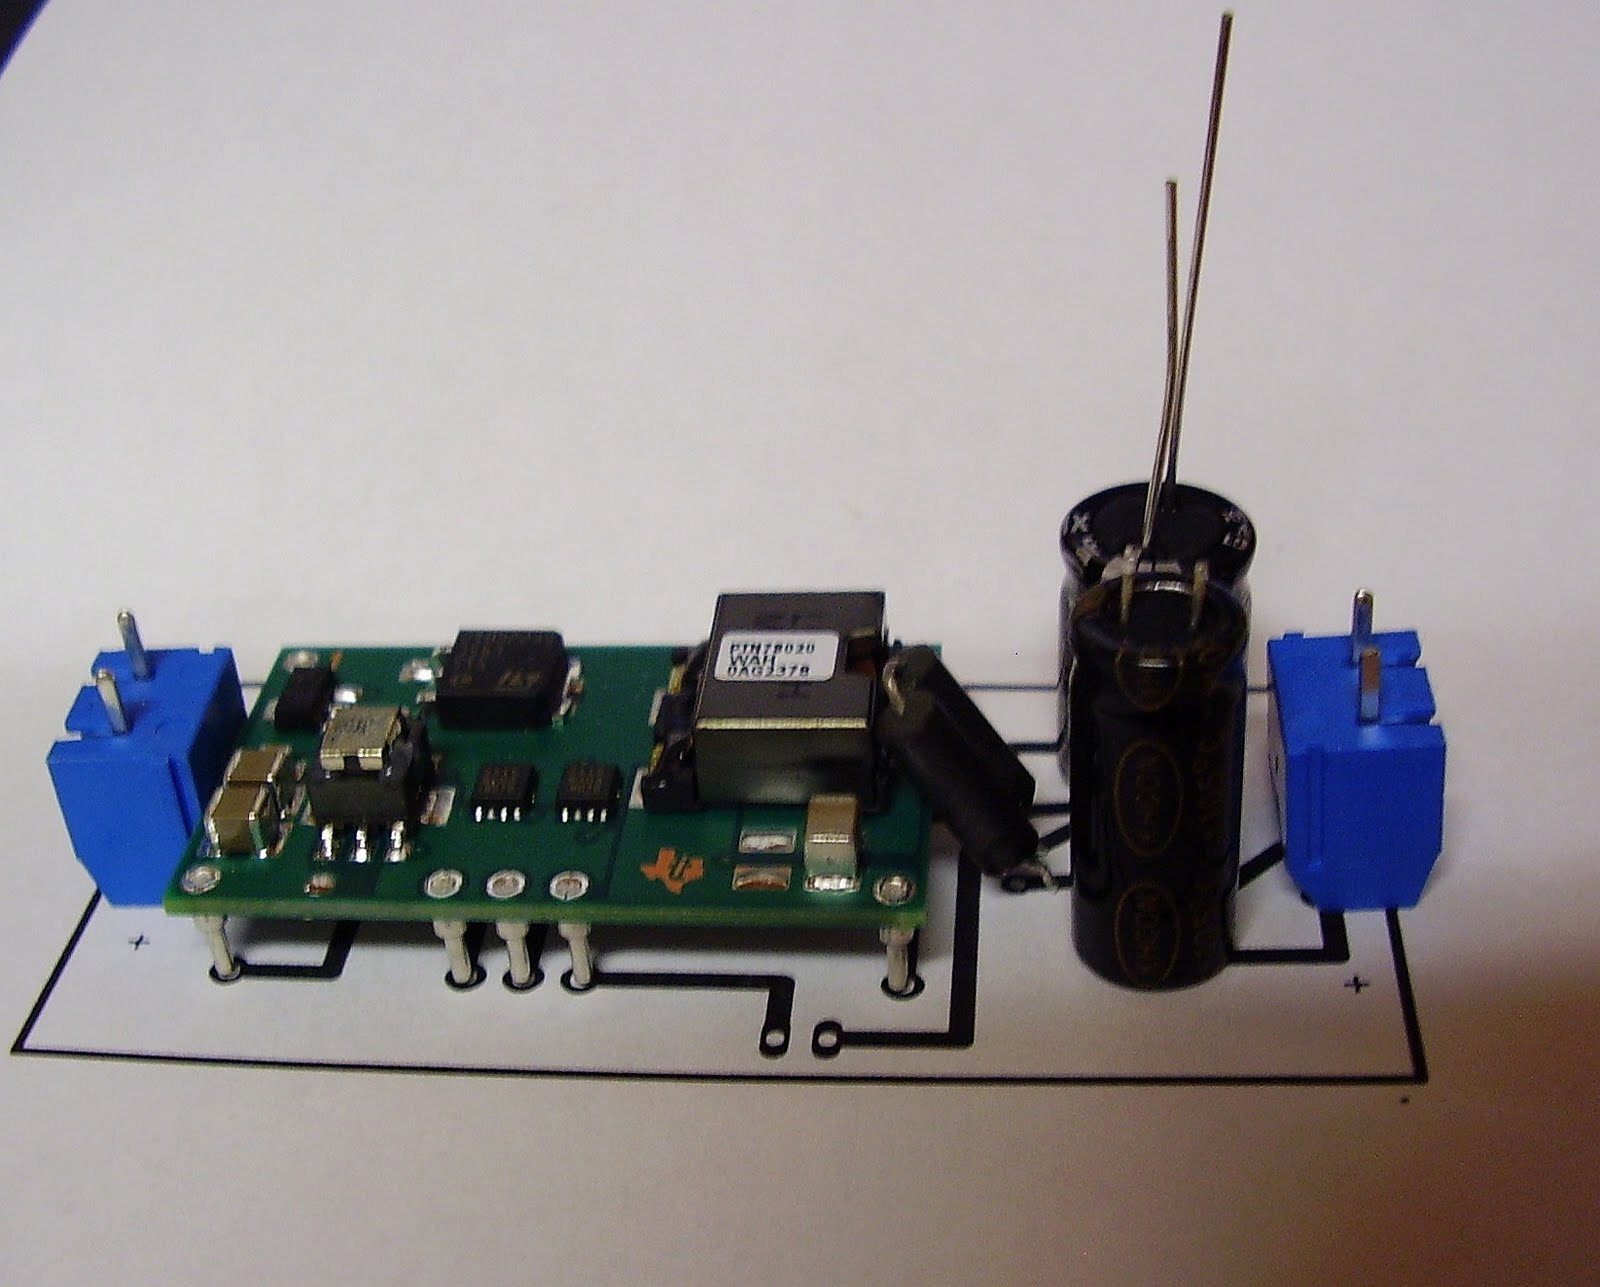 Diy Power Supply For Home Server Usb Io Board Pic18f2455 Pic18f2550